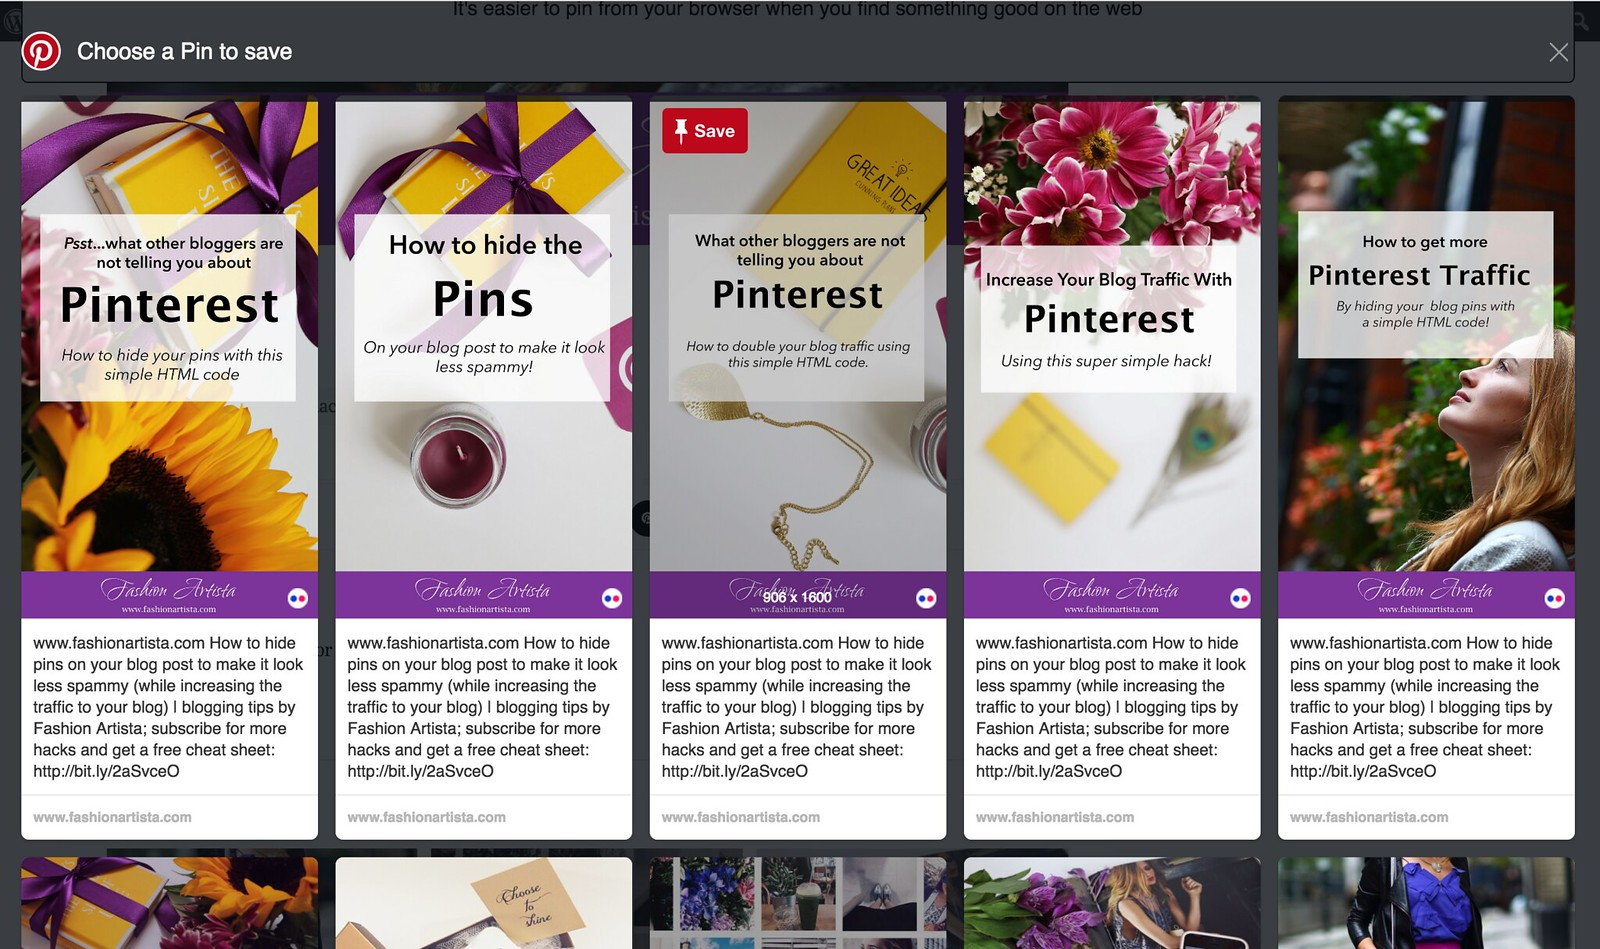 How to hide pins on your blog post by www.fashionartista.com